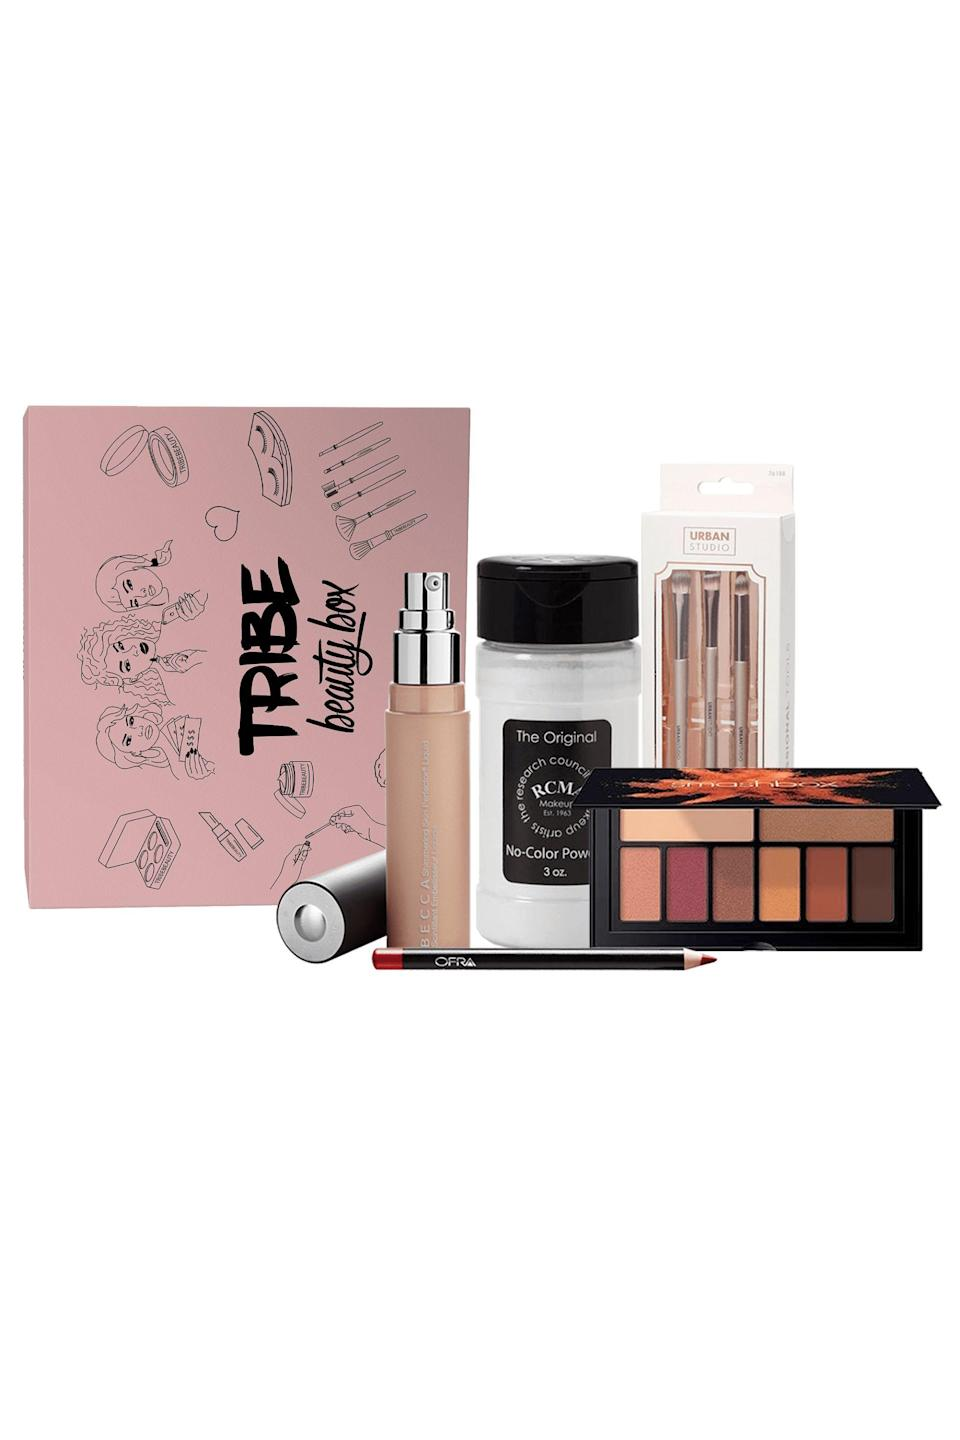 """<p><strong>Tribe Beauty Box</strong></p><p>tribebeautybox.com</p><p><strong>$34.99</strong></p><p><a href=""""https://tribebeautybox.com/collections/tribe-beauty-box-subscription/products/tribe-beauty-box?variant=30108401008674"""" rel=""""nofollow noopener"""" target=""""_blank"""" data-ylk=""""slk:Shop Now"""" class=""""link rapid-noclick-resp"""">Shop Now</a></p><p>With new beauty launches happening every month, it can be hard to keep up. The Tribe beauty box puts together the best beauty products from eyeshadow pallets to lash extensions. The brand is female and <a href=""""https://www.elle.com/fashion/shopping/g33600474/black-owned-handbag-brands/"""" rel=""""nofollow noopener"""" target=""""_blank"""" data-ylk=""""slk:Black-owned"""" class=""""link rapid-noclick-resp"""">Black-owned</a> making it a great place to spend your coin.</p>"""